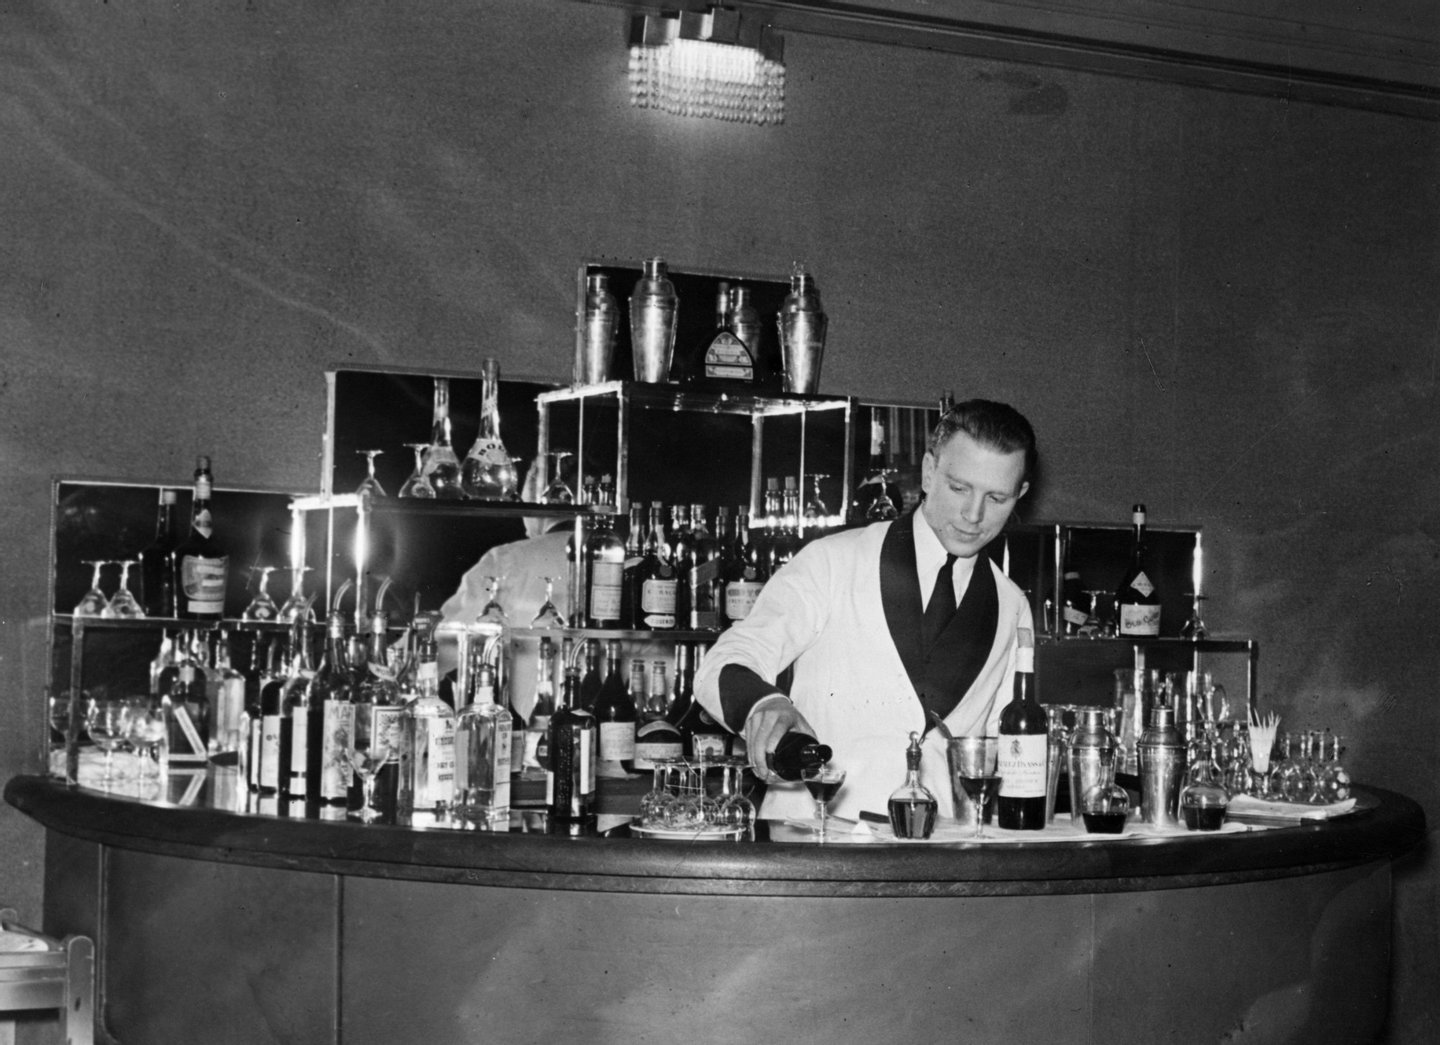 6th April 1932: The cocktail bar of the Monseigneur in London. (Photo by Sasha/Getty Images)